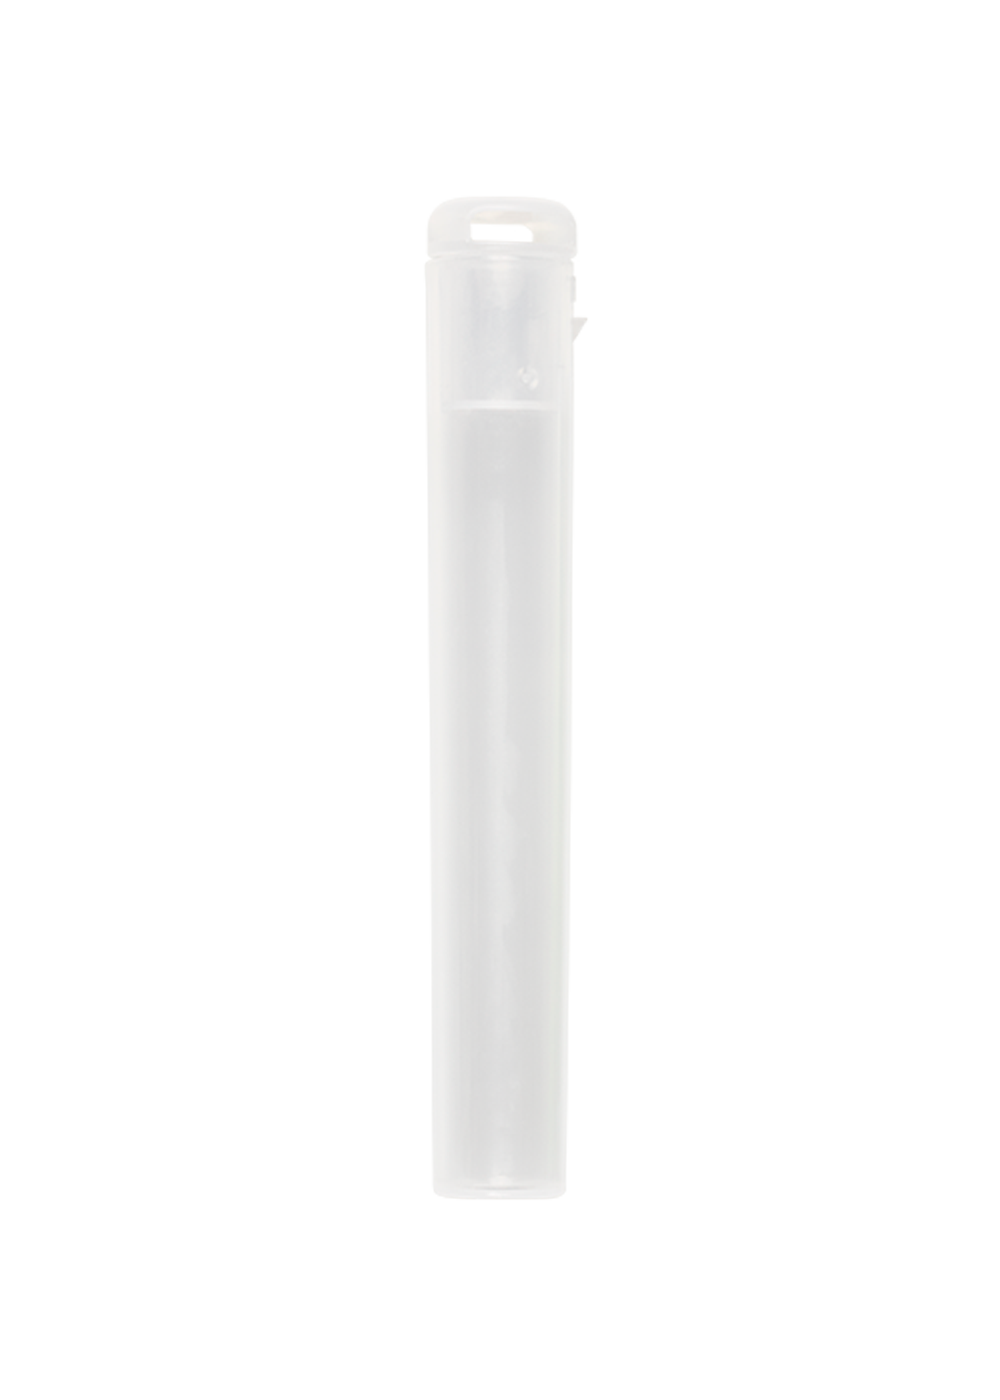 Tube-110-Clear.png